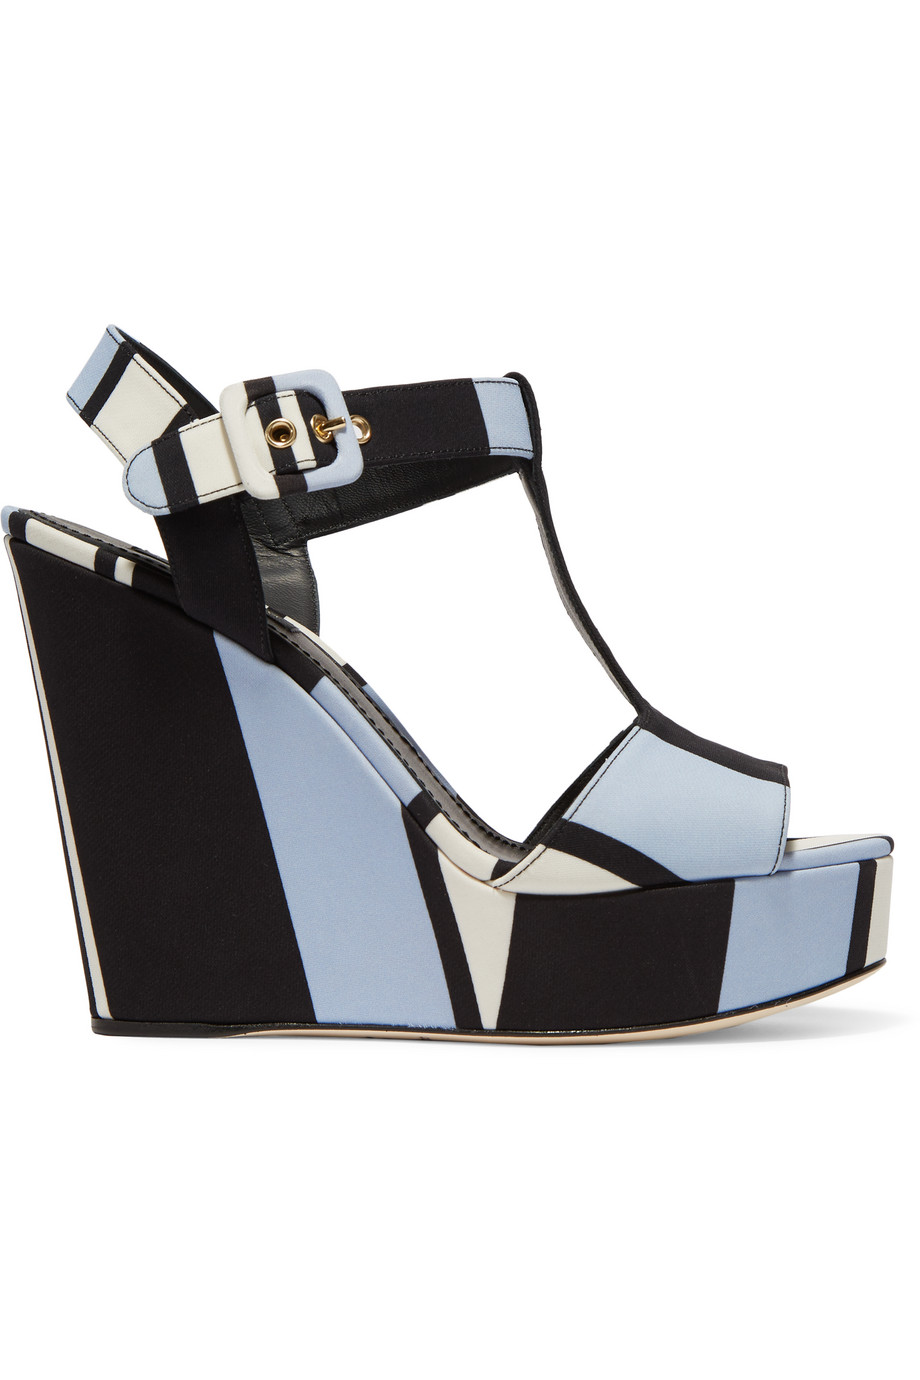 Dolce & Gabbana Striped Canvas Wedge Sandals, Light Blue, Women's US Size: 6, Size: 36.5